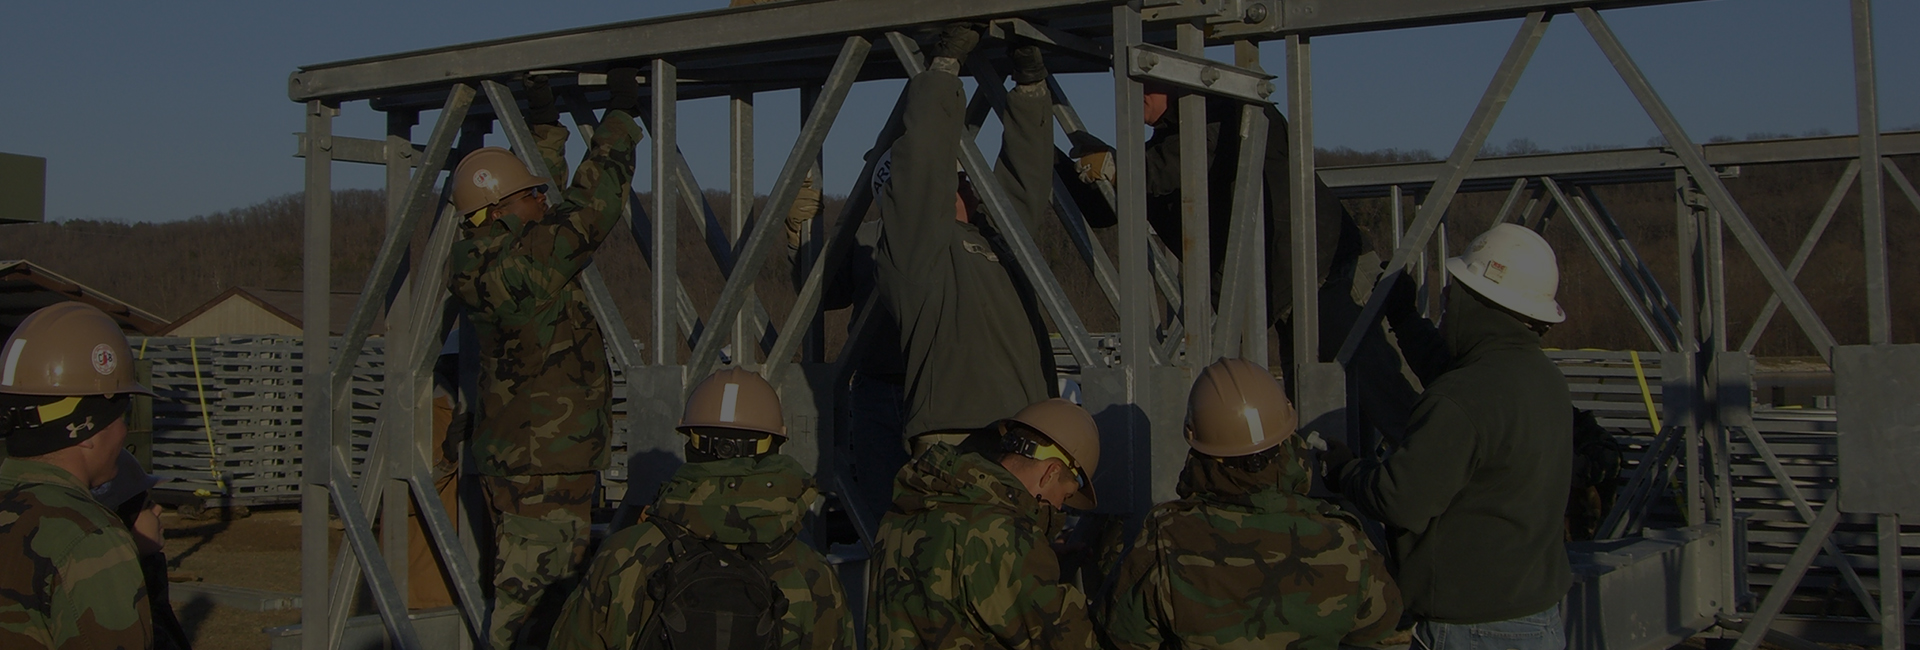 Prefabricated Modular Military Wet Gap Bridge - 02